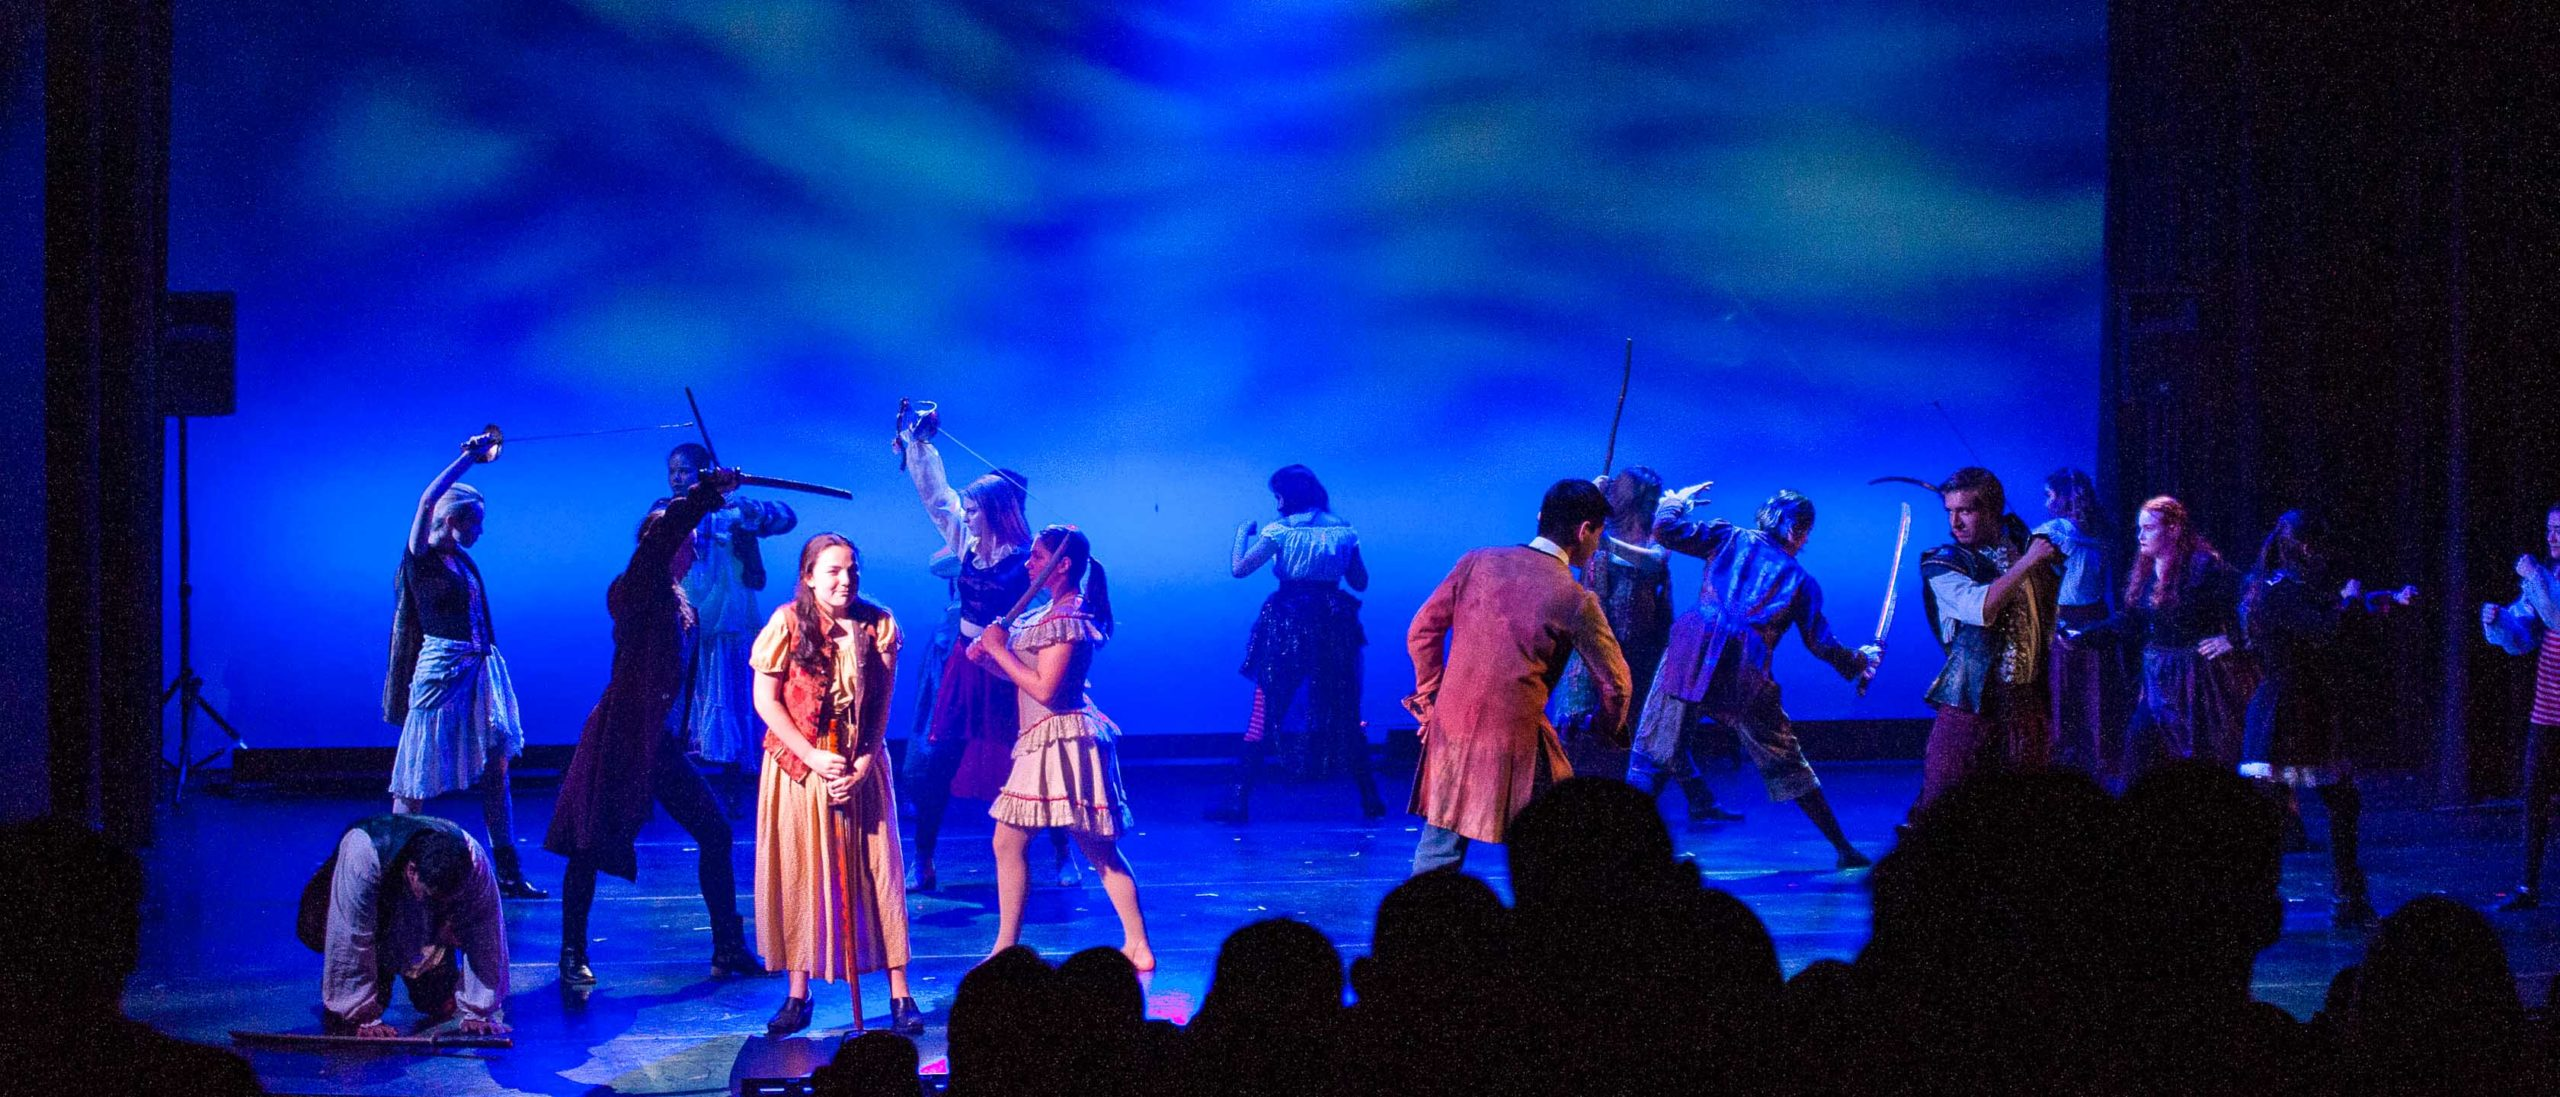 Students dancing with swords during a performance